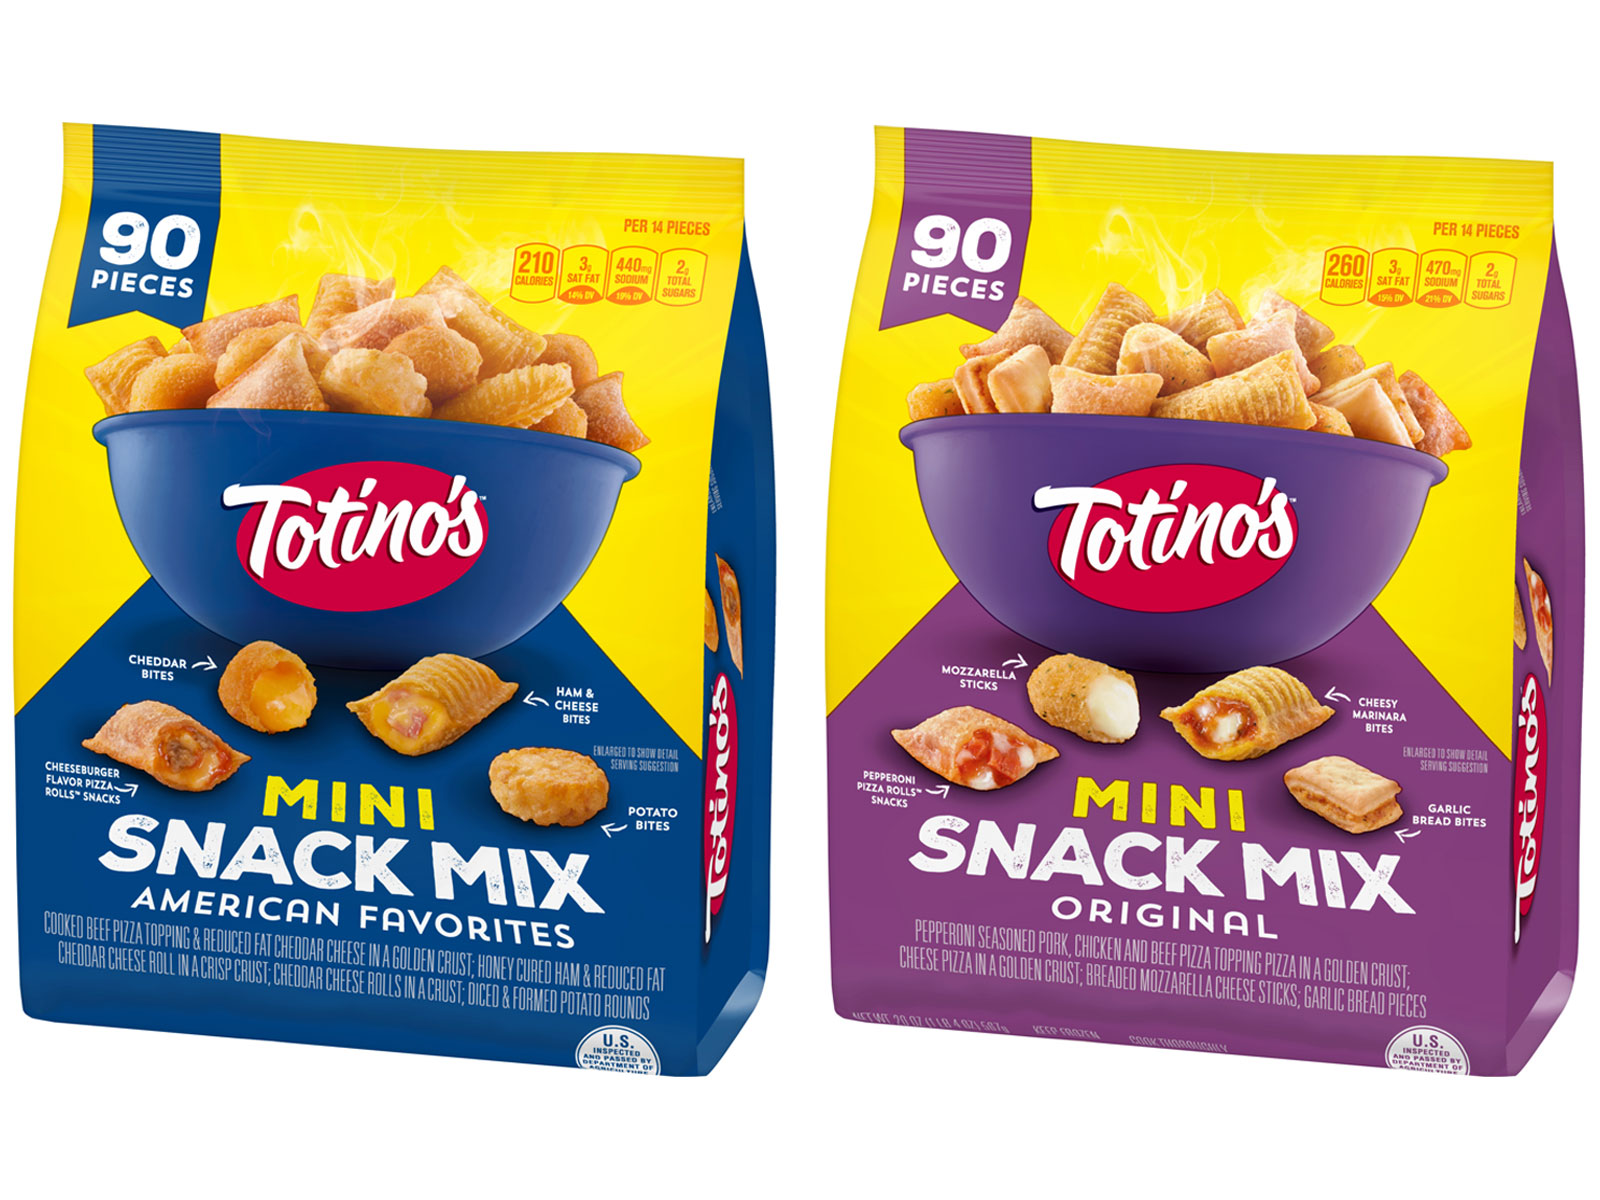 Totino's Created Snack Mixes with Pizza Rolls, Tots, and Garlic Bread Bites